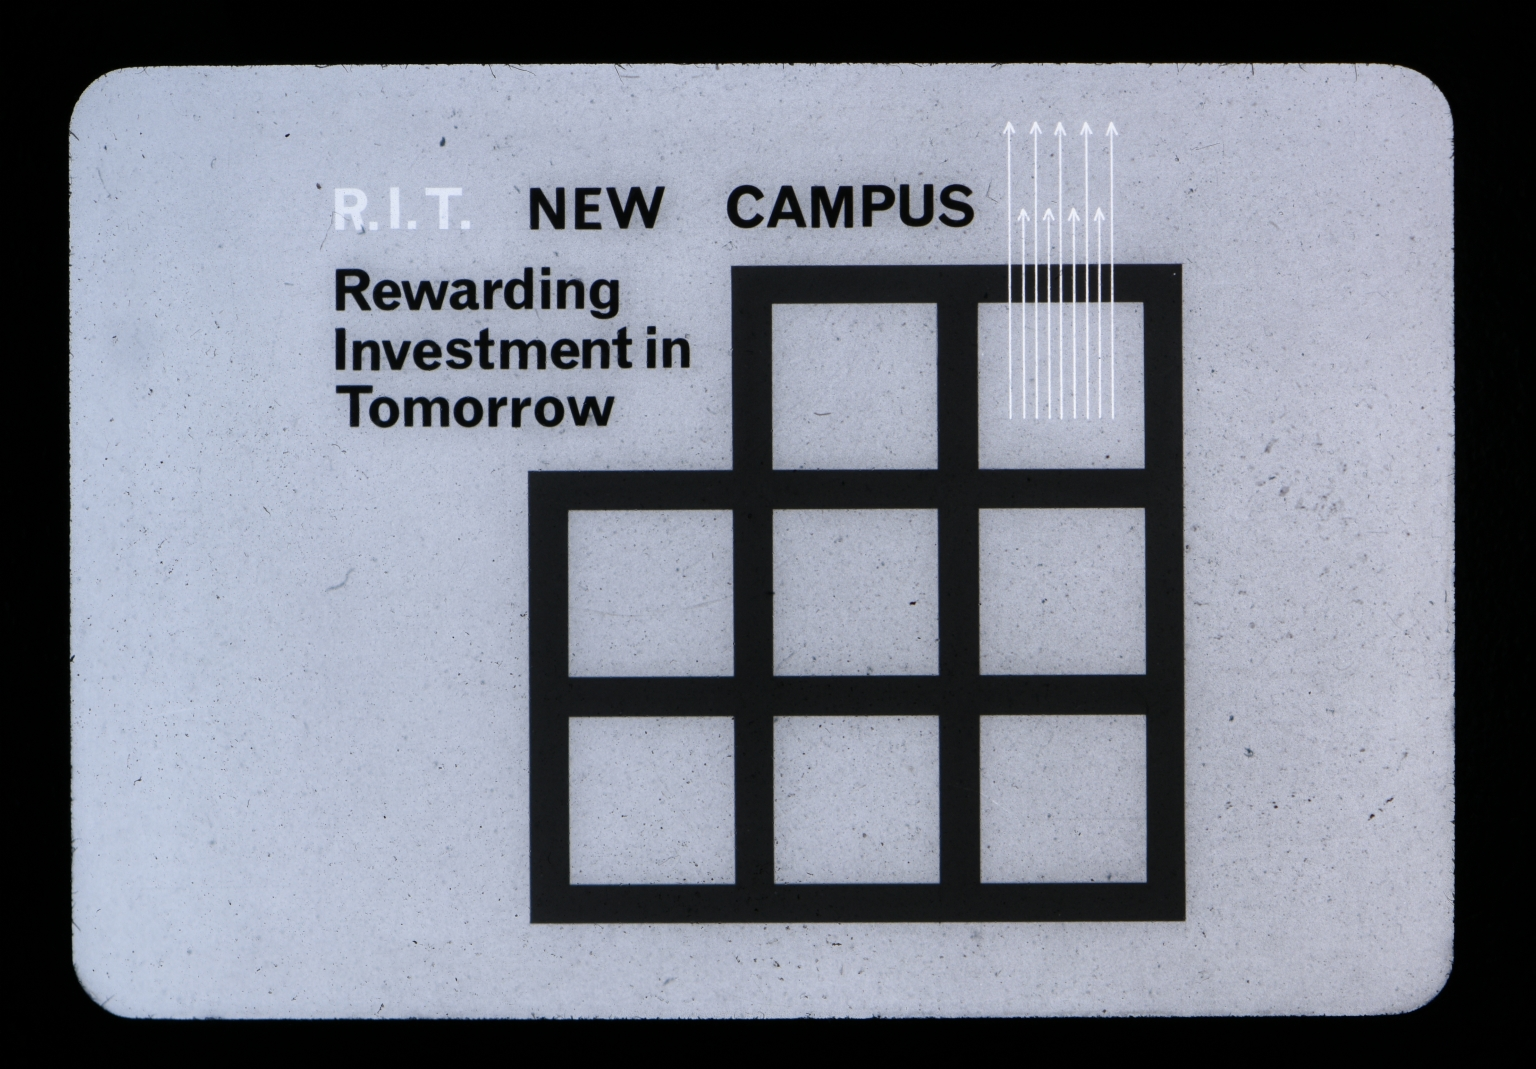 Rewarding Investment in Tomorrow logo